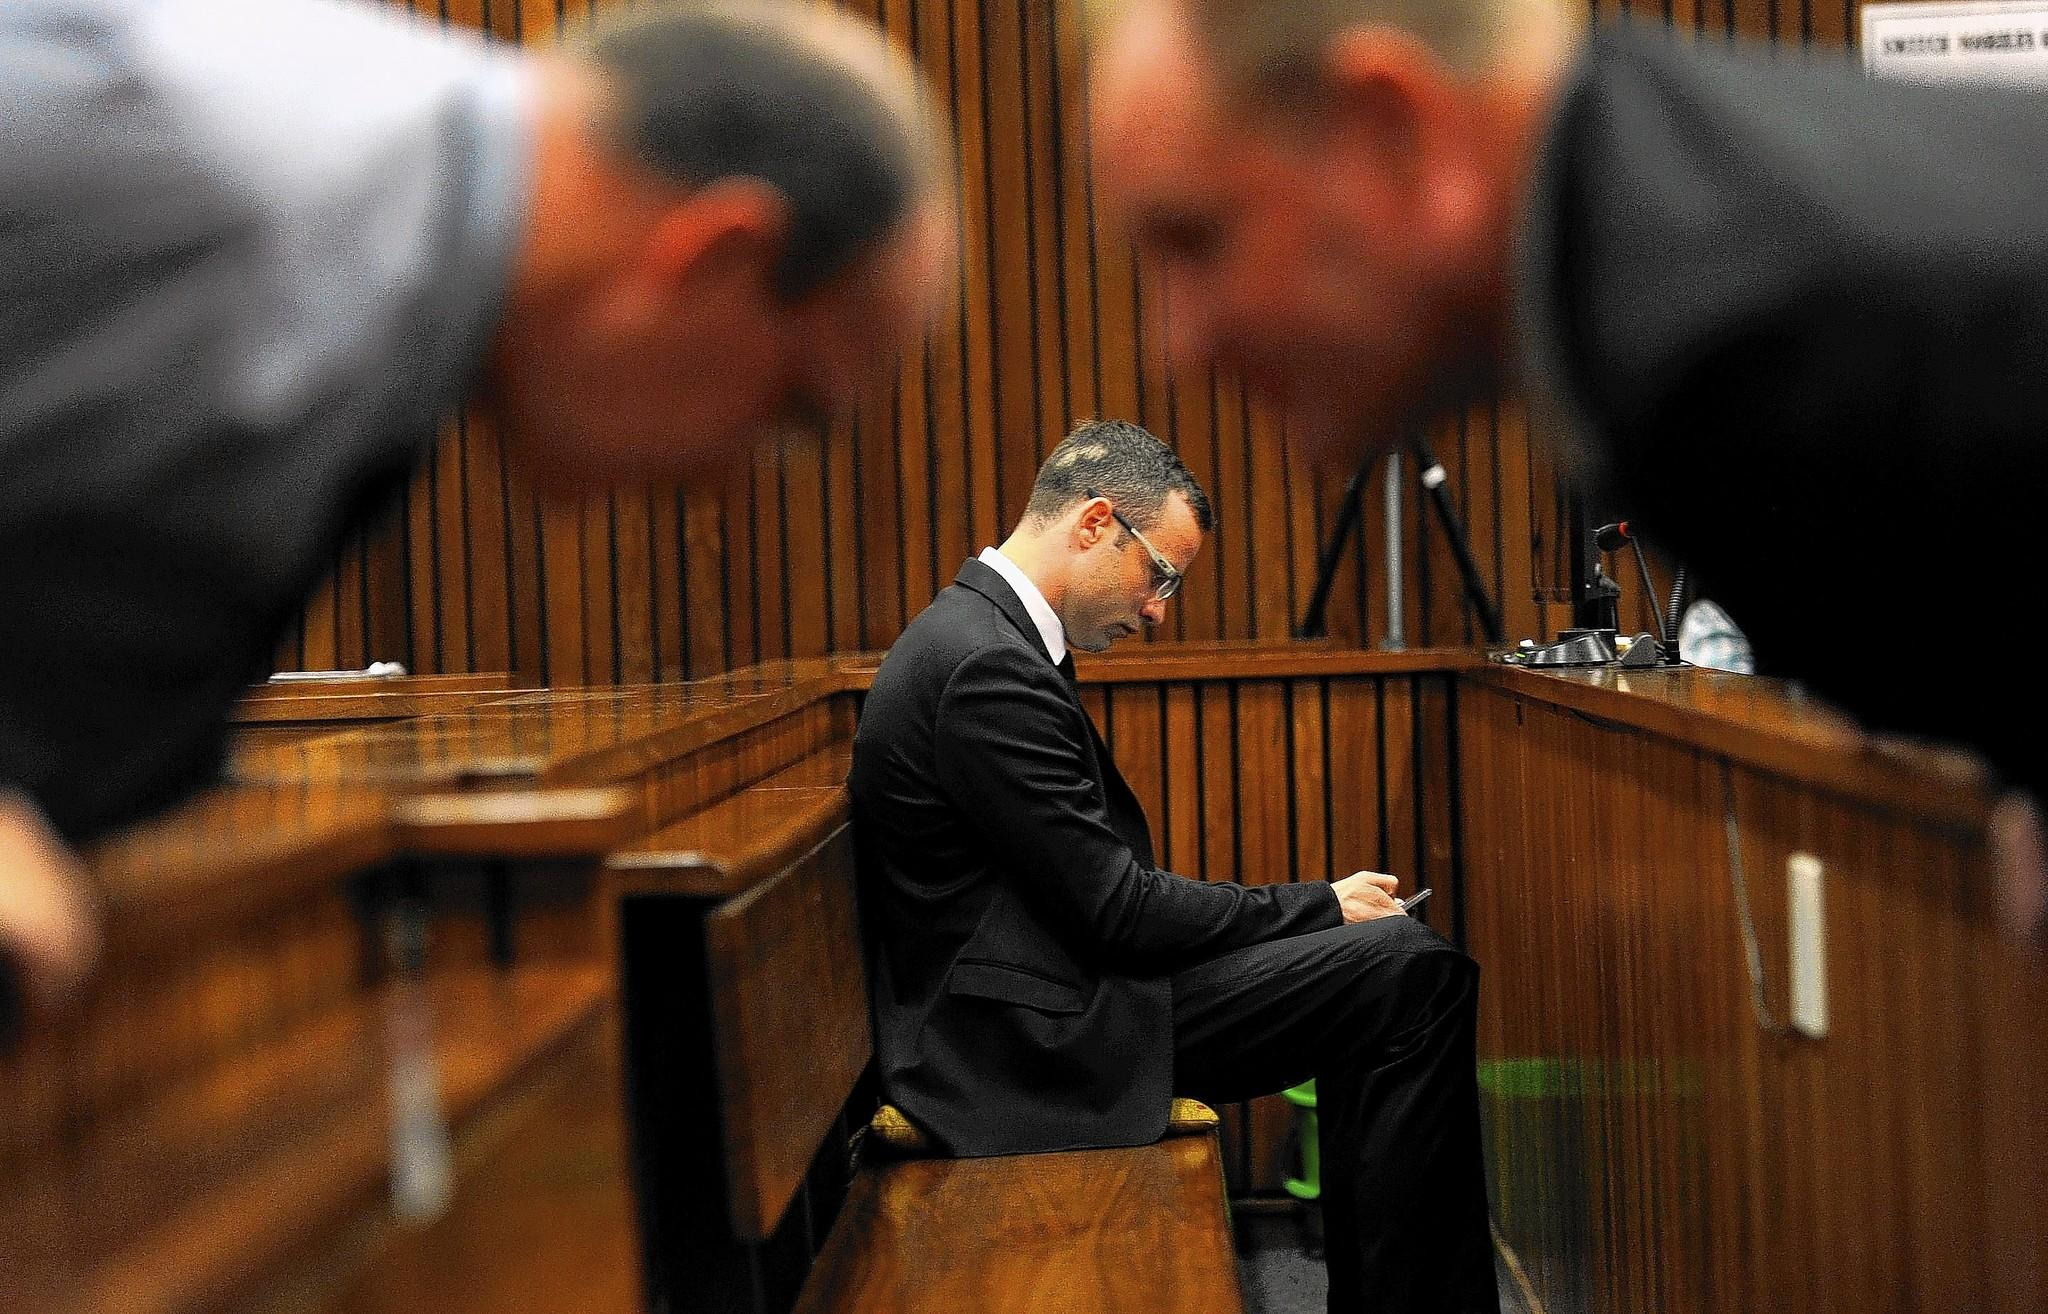 South African athlete Oscar Pistorius' trial in the killing of his girlfriend has helped launch a renewed debate of the country's violent crime rate and its connection to race and economic opportunity.